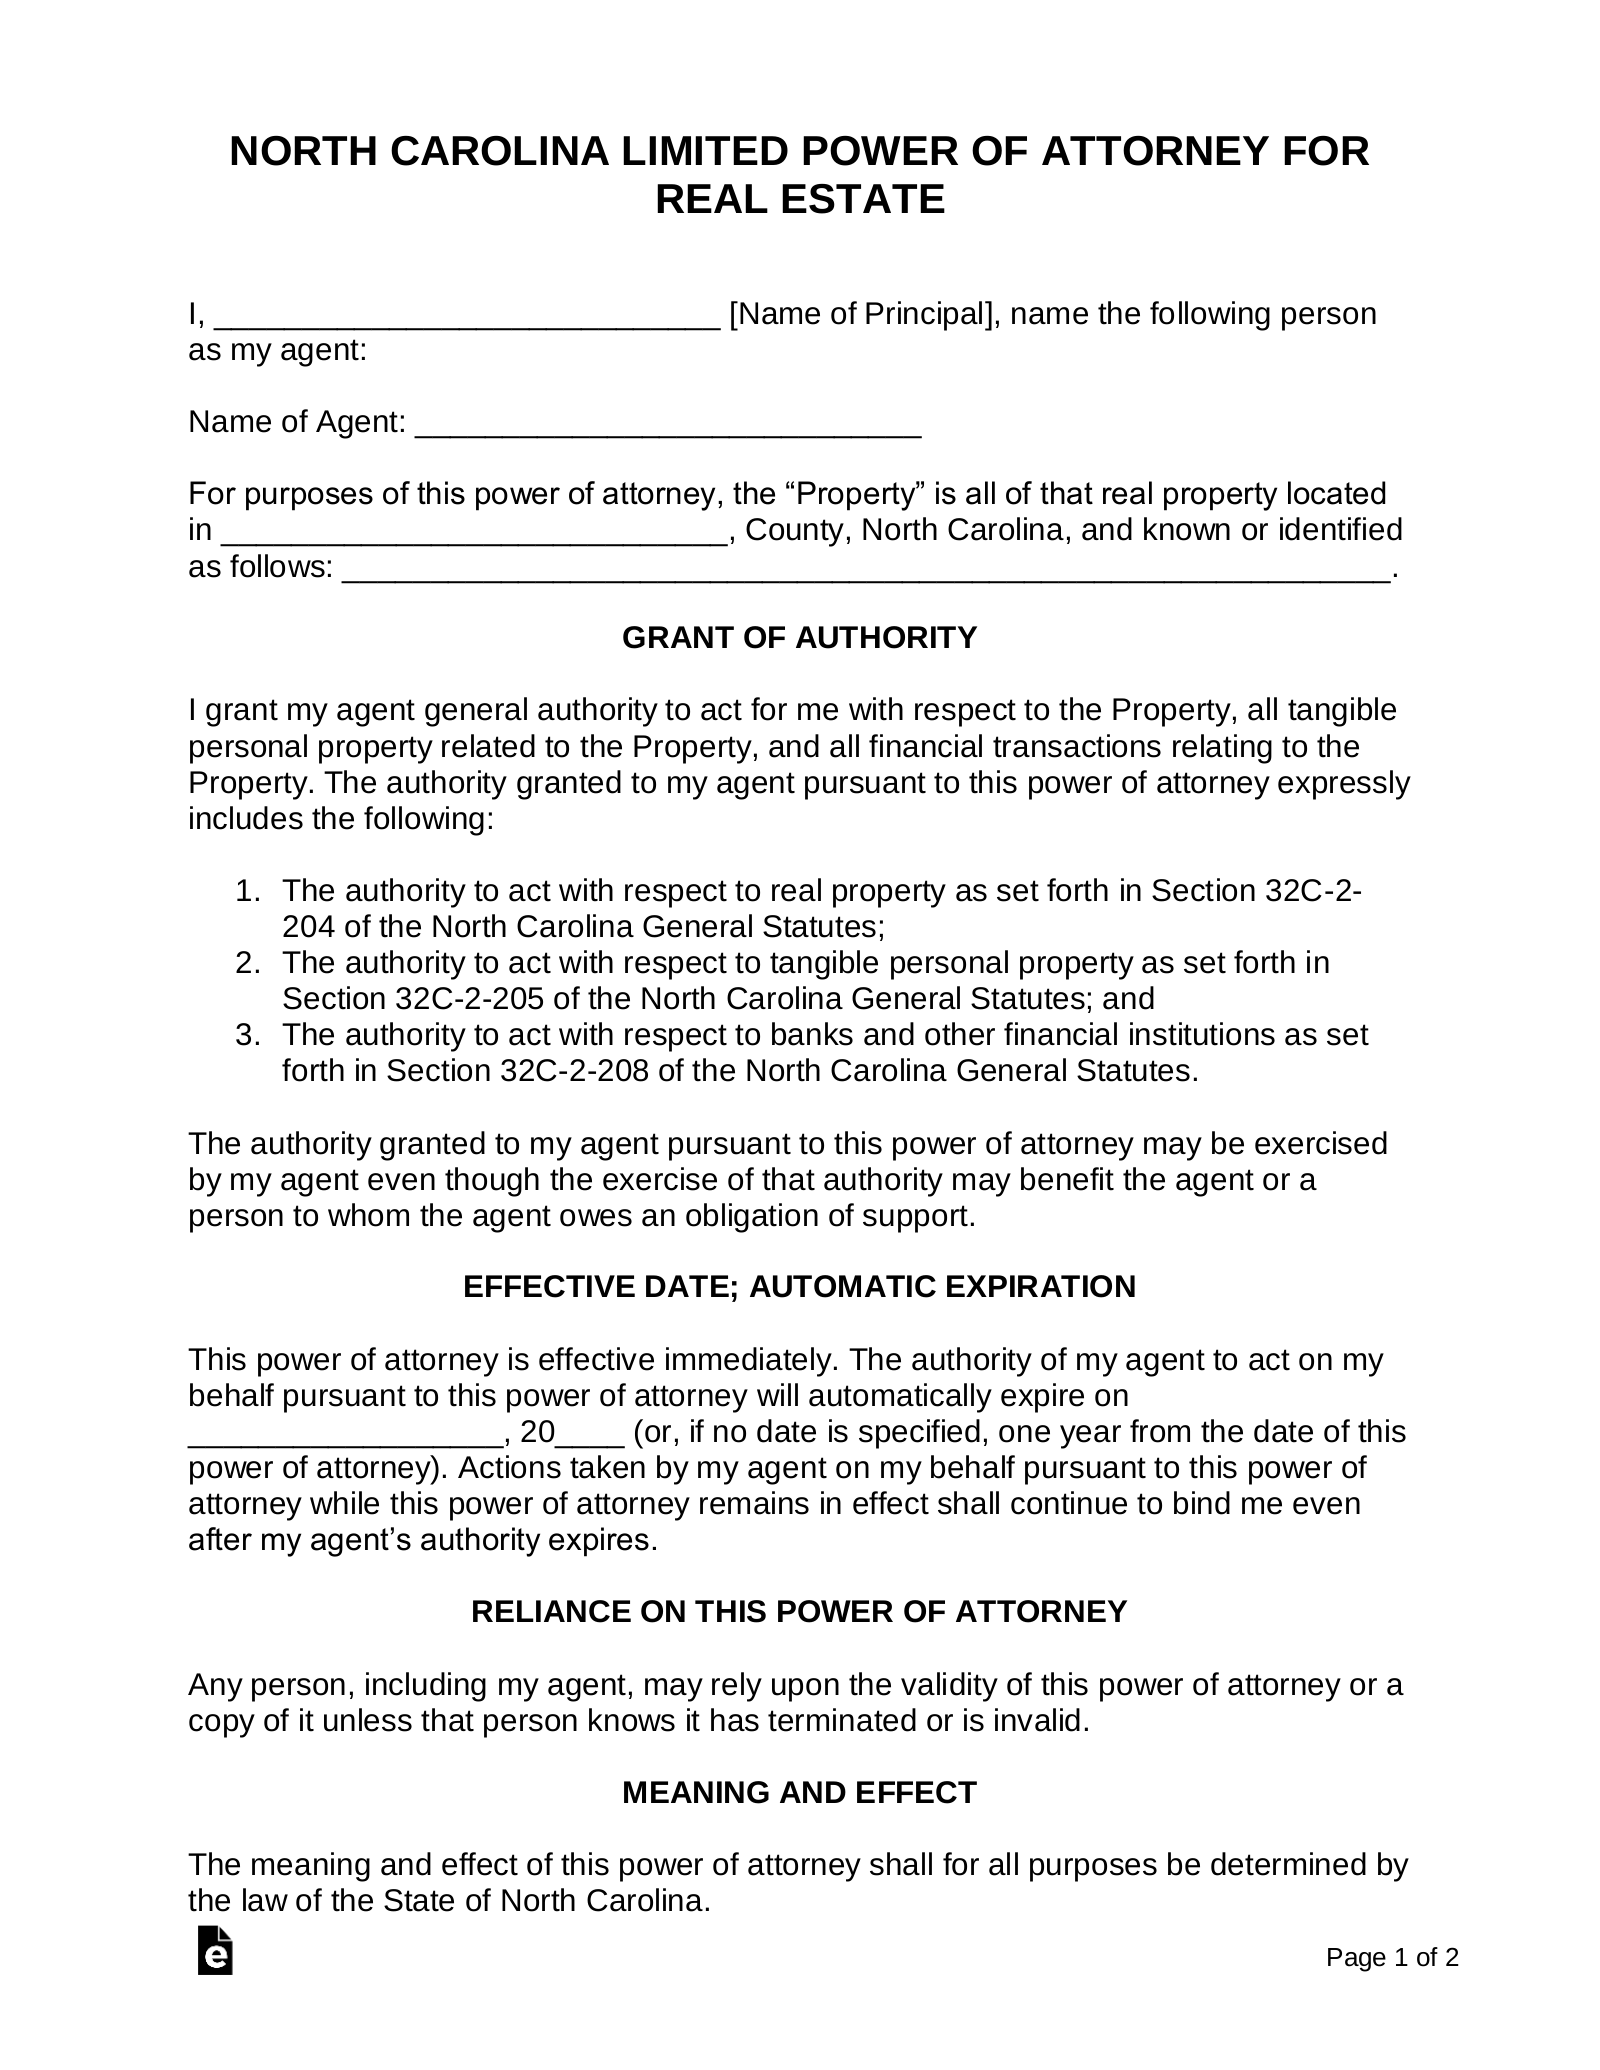 real estate power of attorney form  Free North Carolina Real Estate Power of Attorney Form - PDF ...